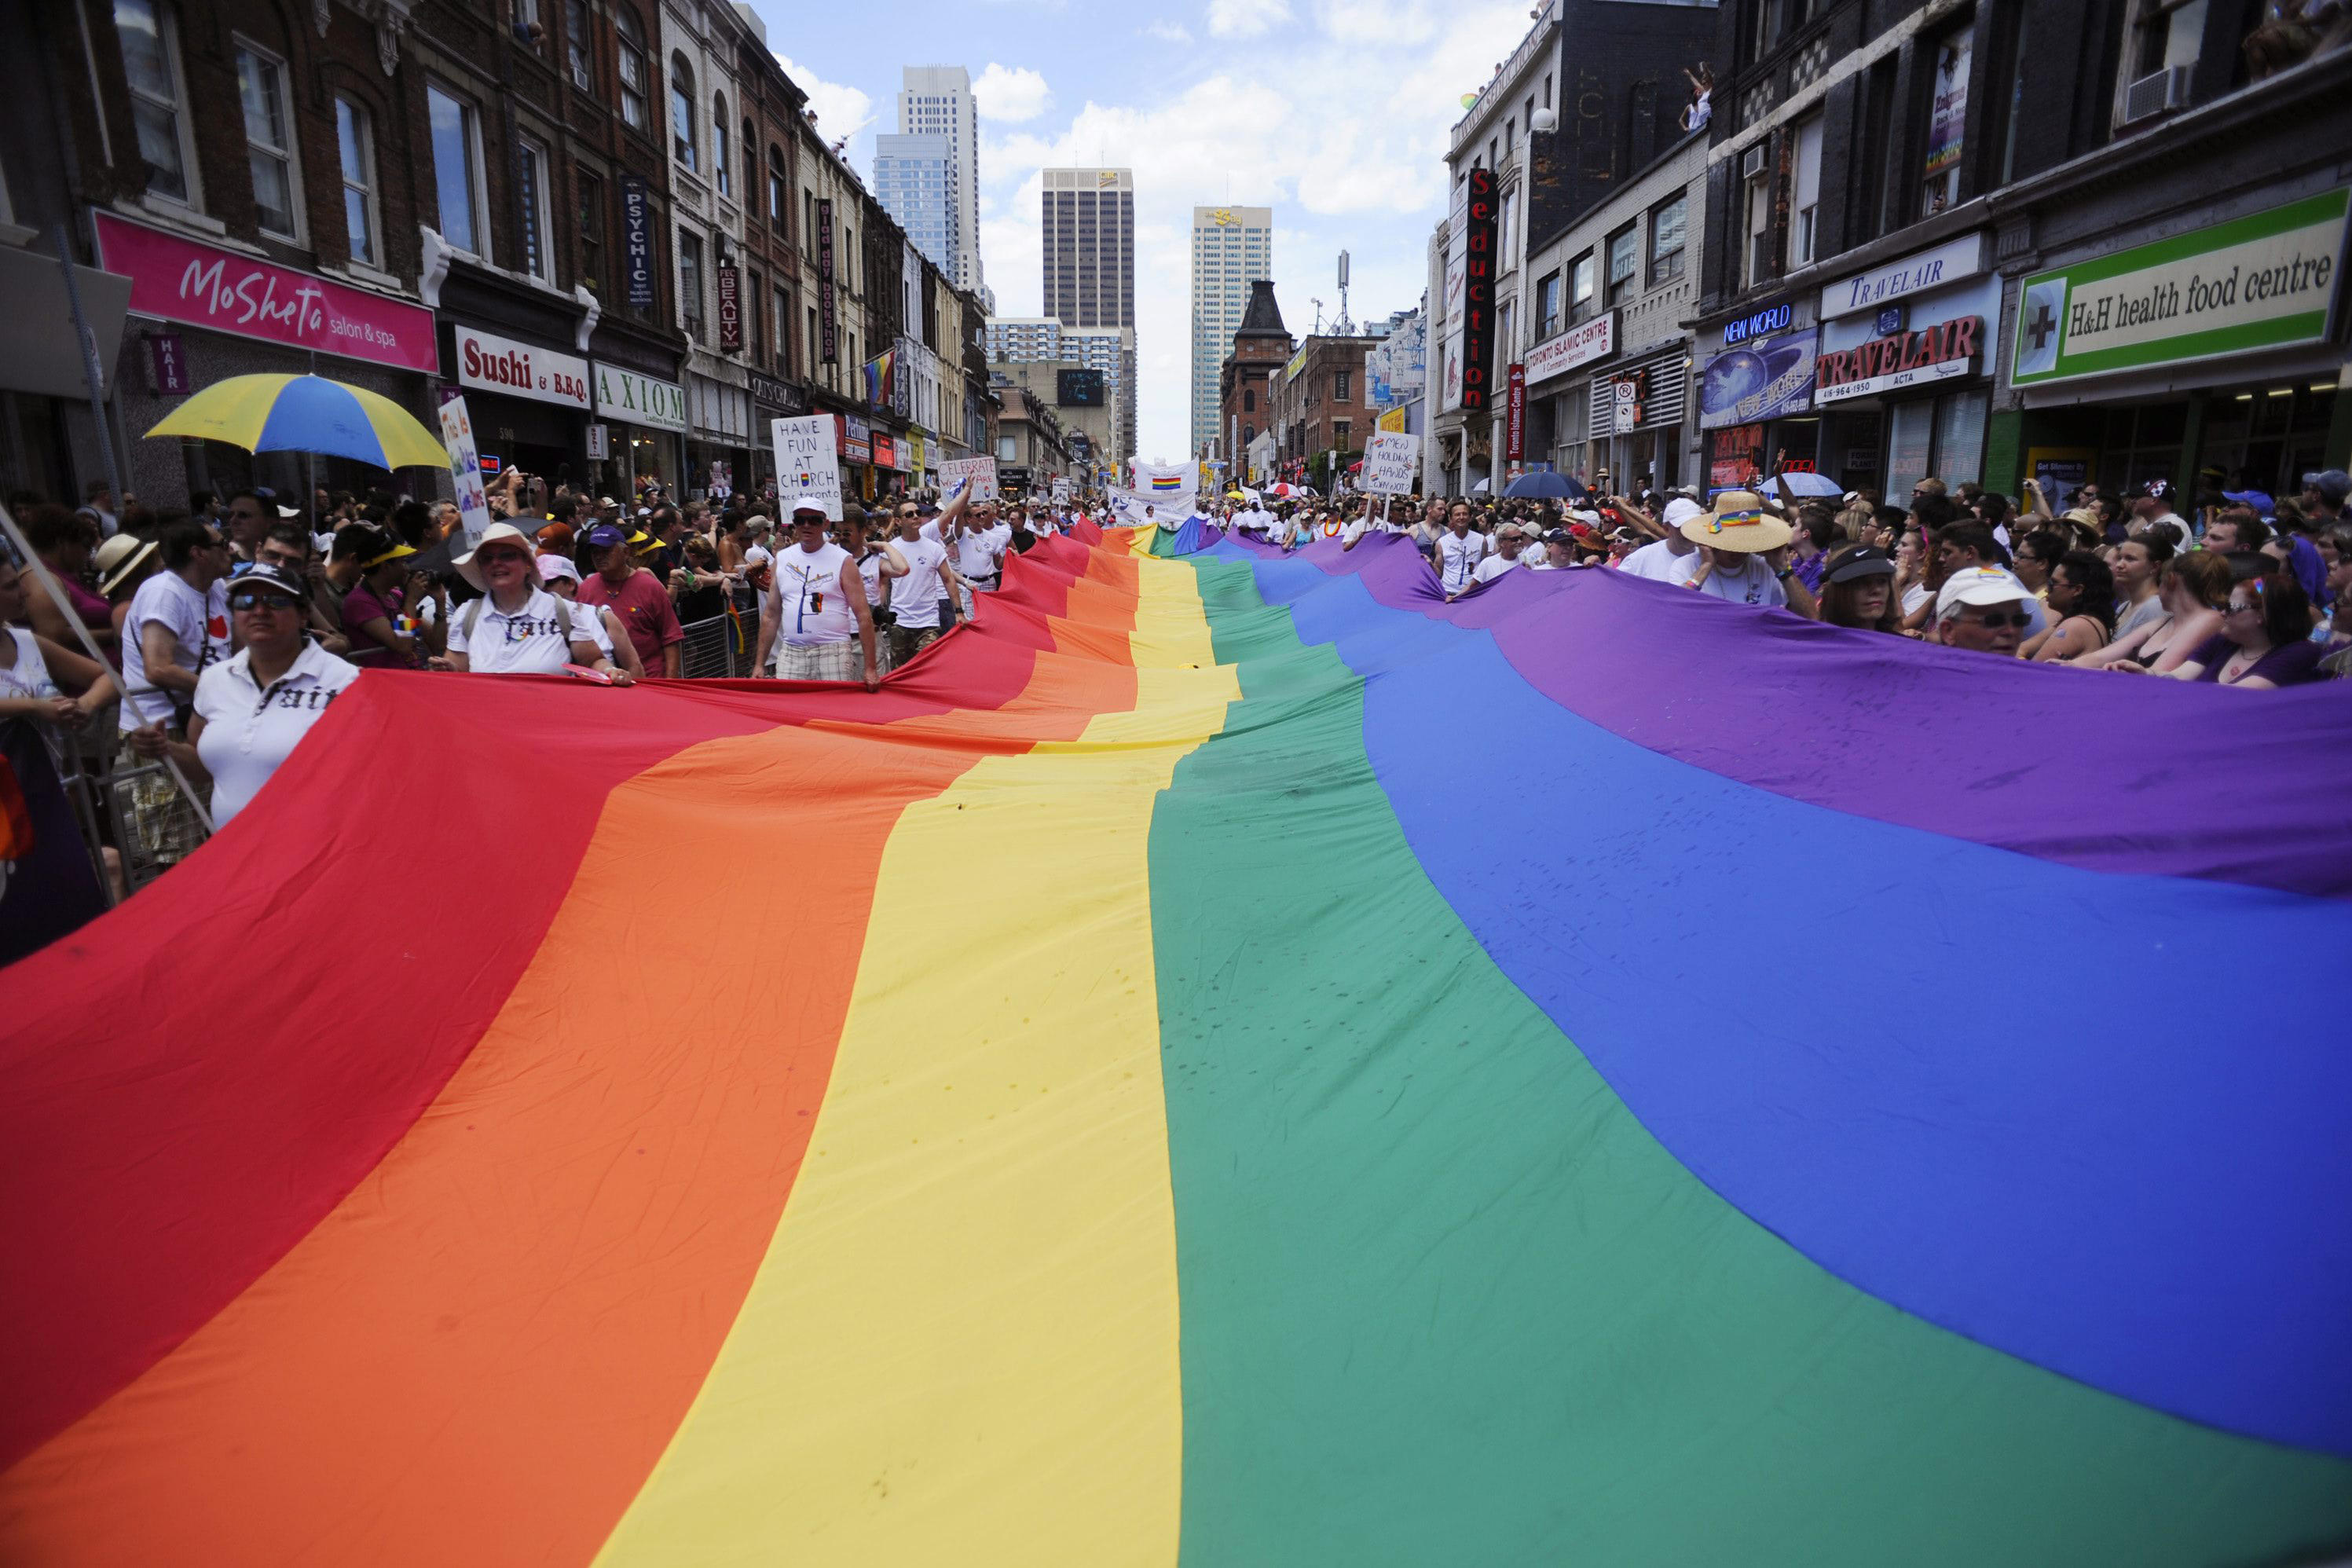 People take part in the annual Pride Parade in Toronto on July 3, 2011. THE CANADIAN PRESS/Ian Willms